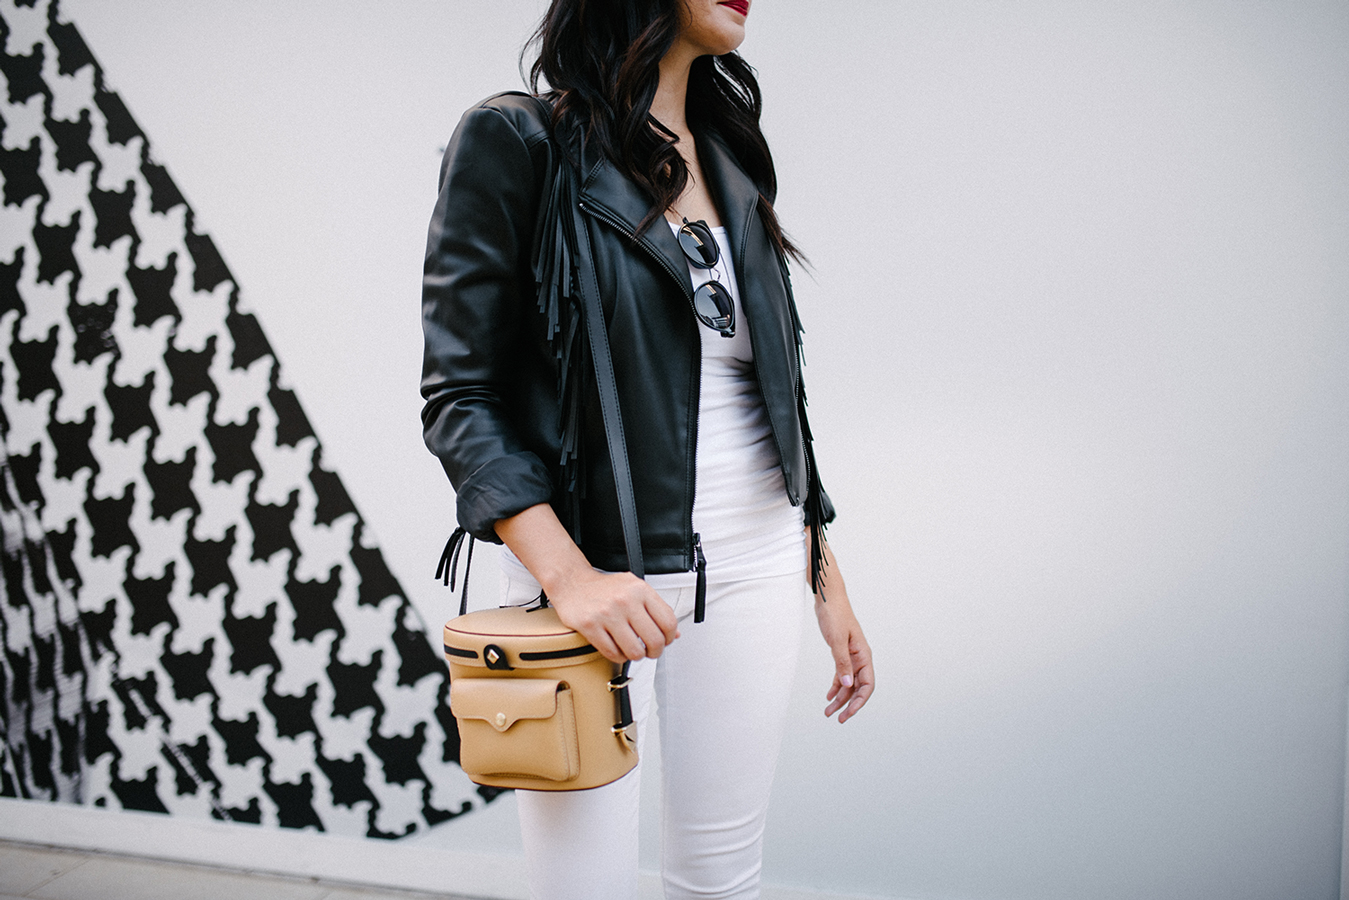 FIXIN-TO-THRILL-EXPRESS-FRINGE-LEATHER-JACKET-REBECCA-MINKOFF-TREND-CARLOS-BARRON-FALL-OCTOBER-ATX-AUSTIN-STYLE-BLOG-FW15-TRENDY-CHIC-GLAM-FASHION-TEXAS